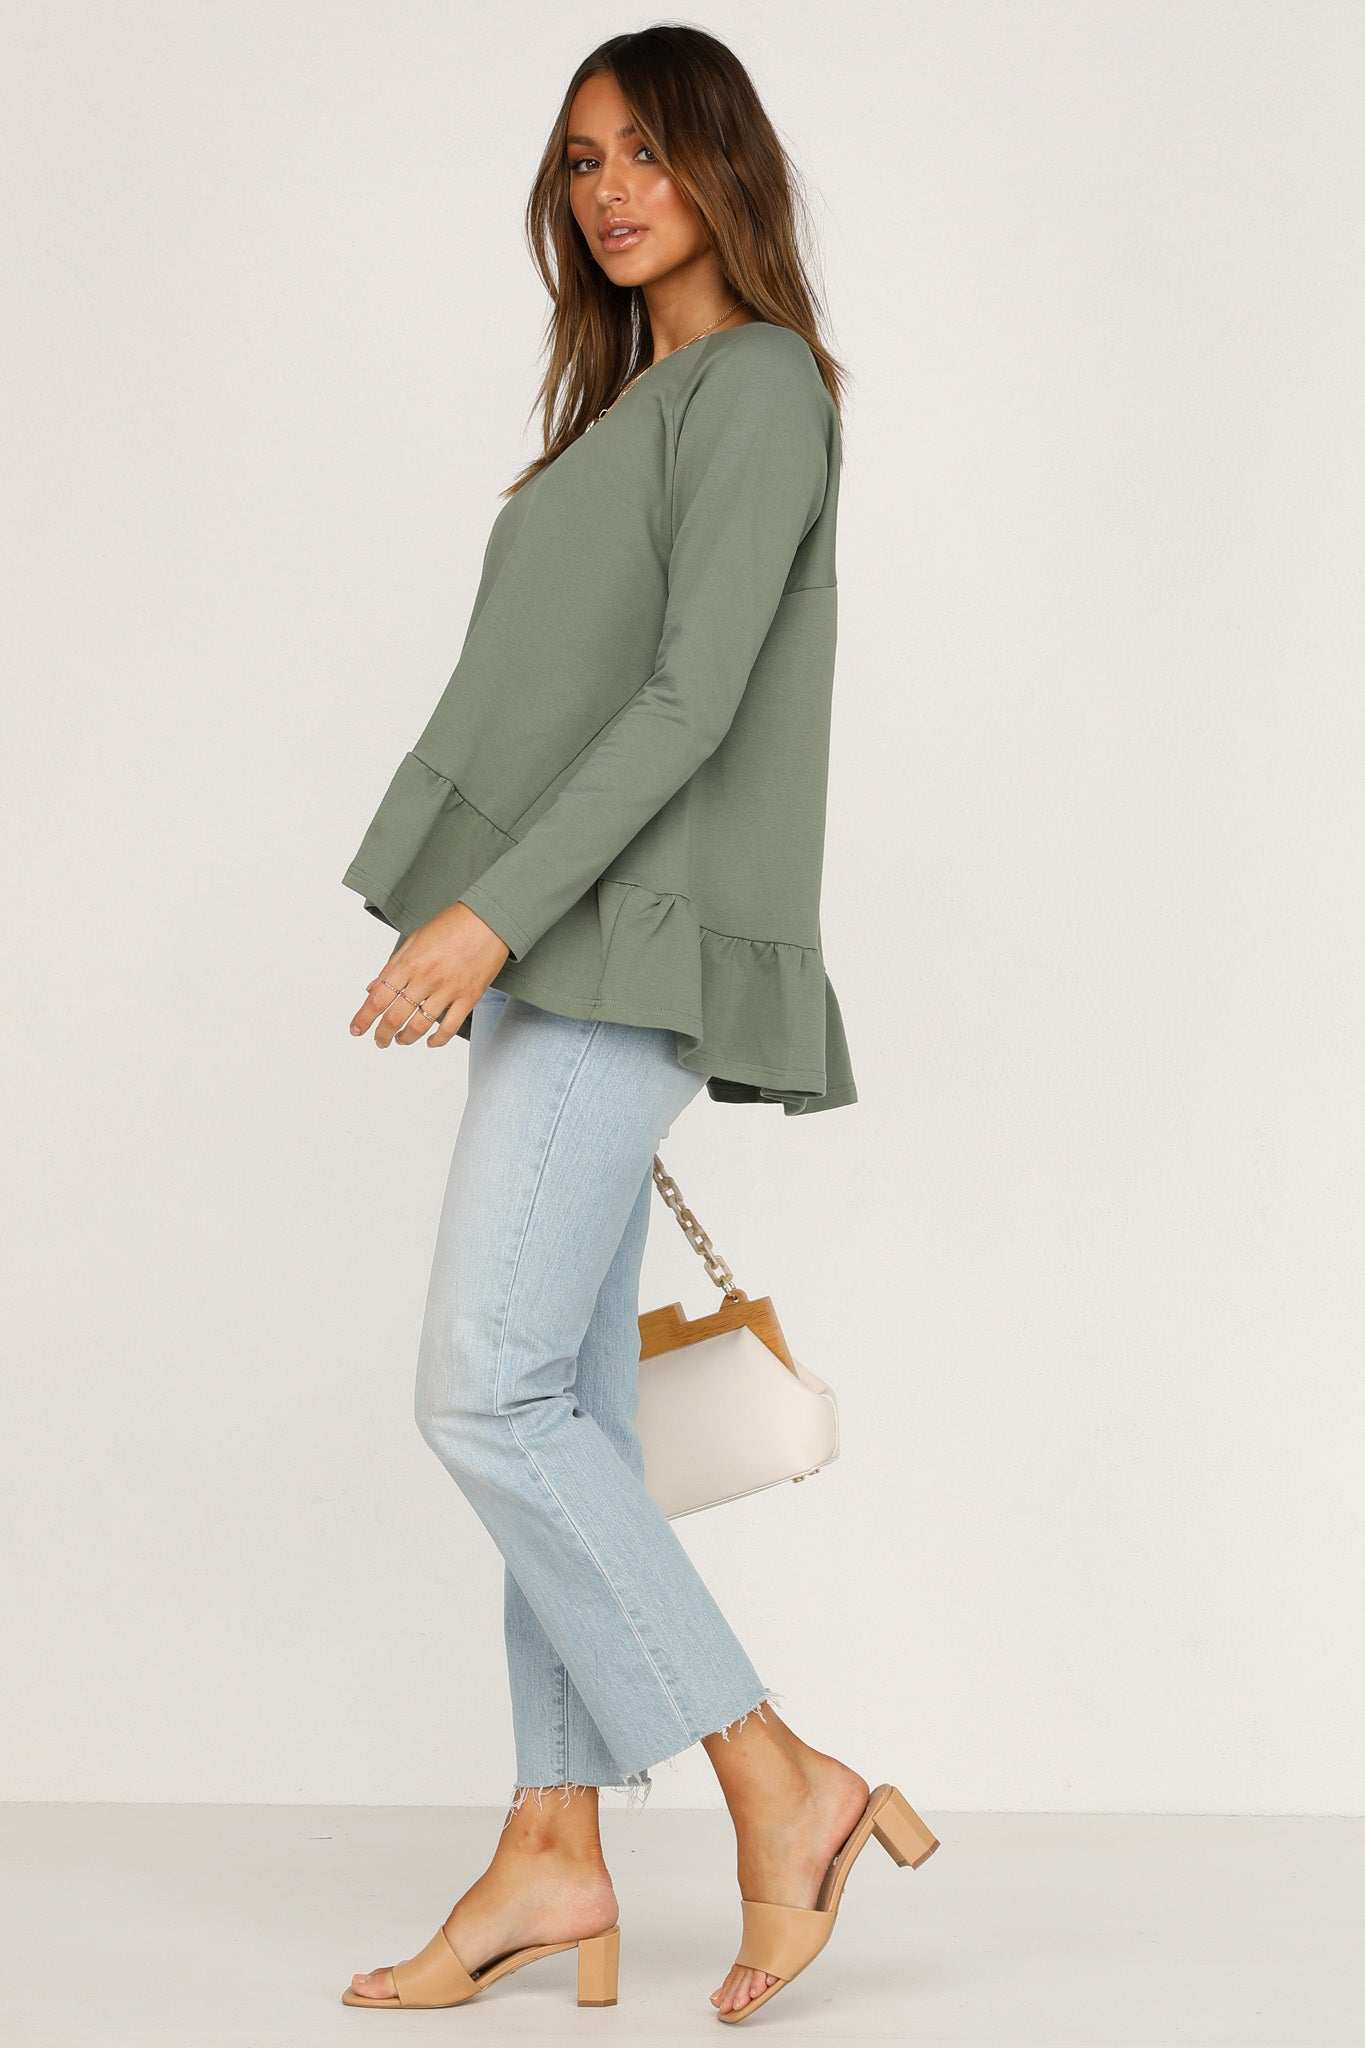 On The Level Top (Khaki)